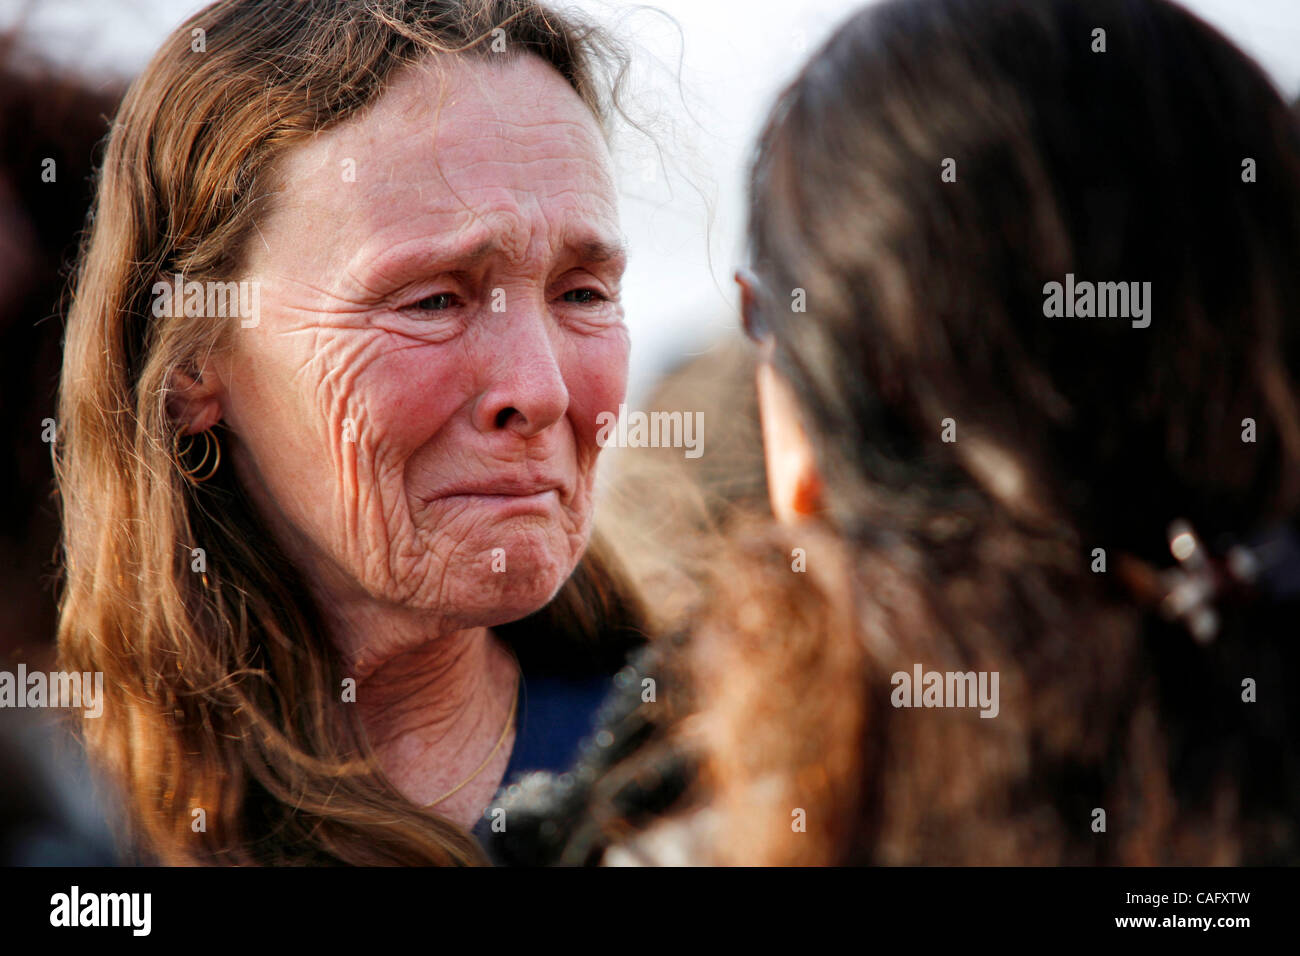 Feb 22, 2008 - Port Hueneme, California, USA - SUSAN CROWLEY, Lawrence 'Larry' King's Special ED teacher - Stock Image